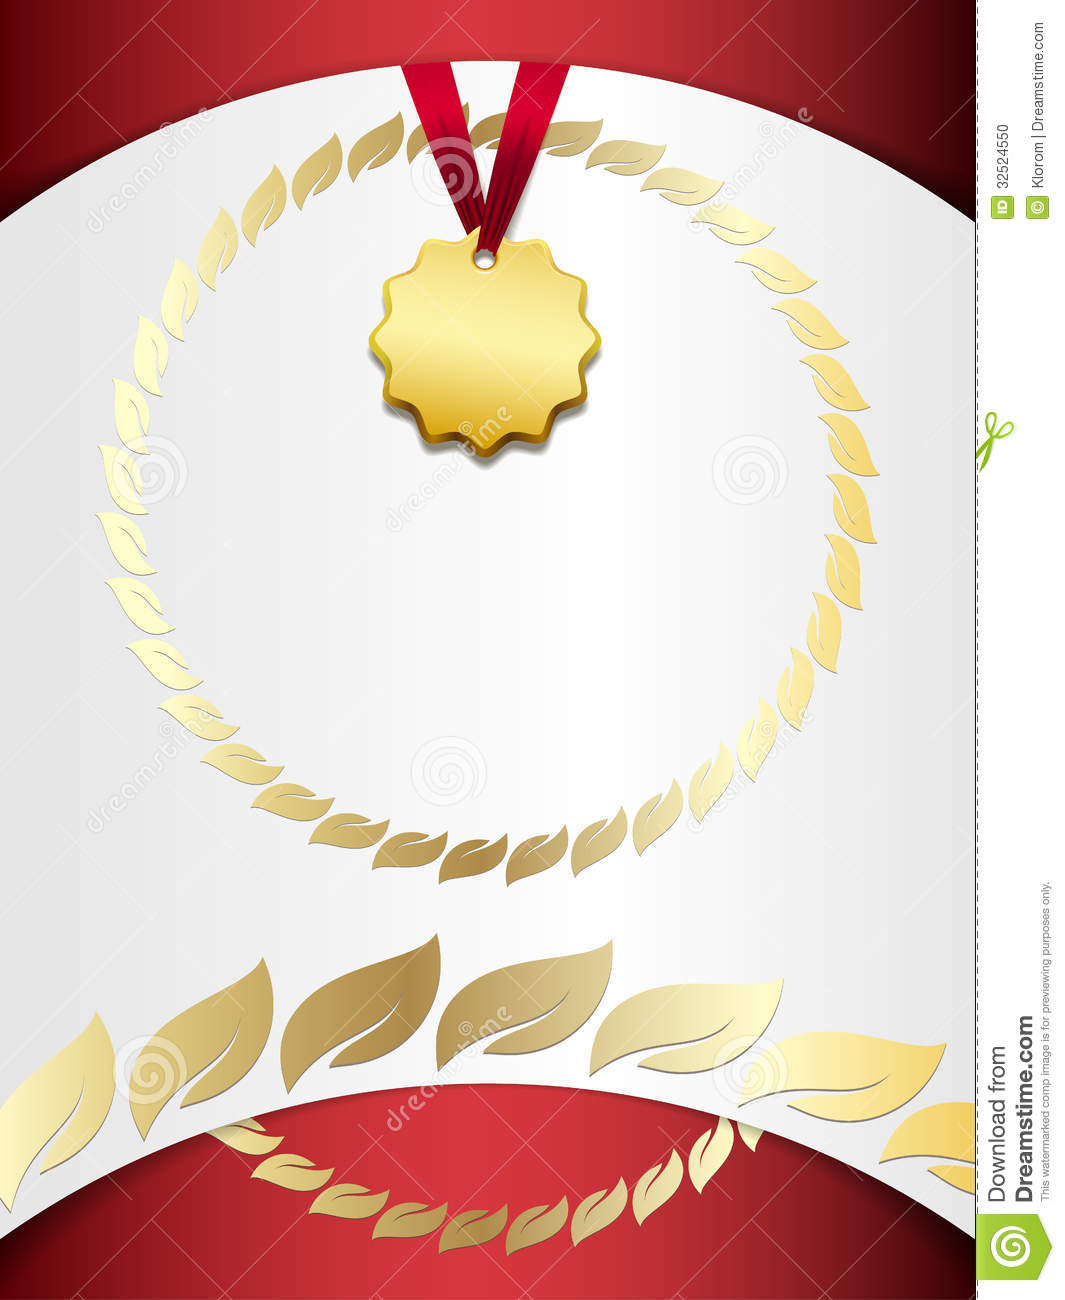 Certificate With A Gold Medal Stock Photo - Image: 32524550